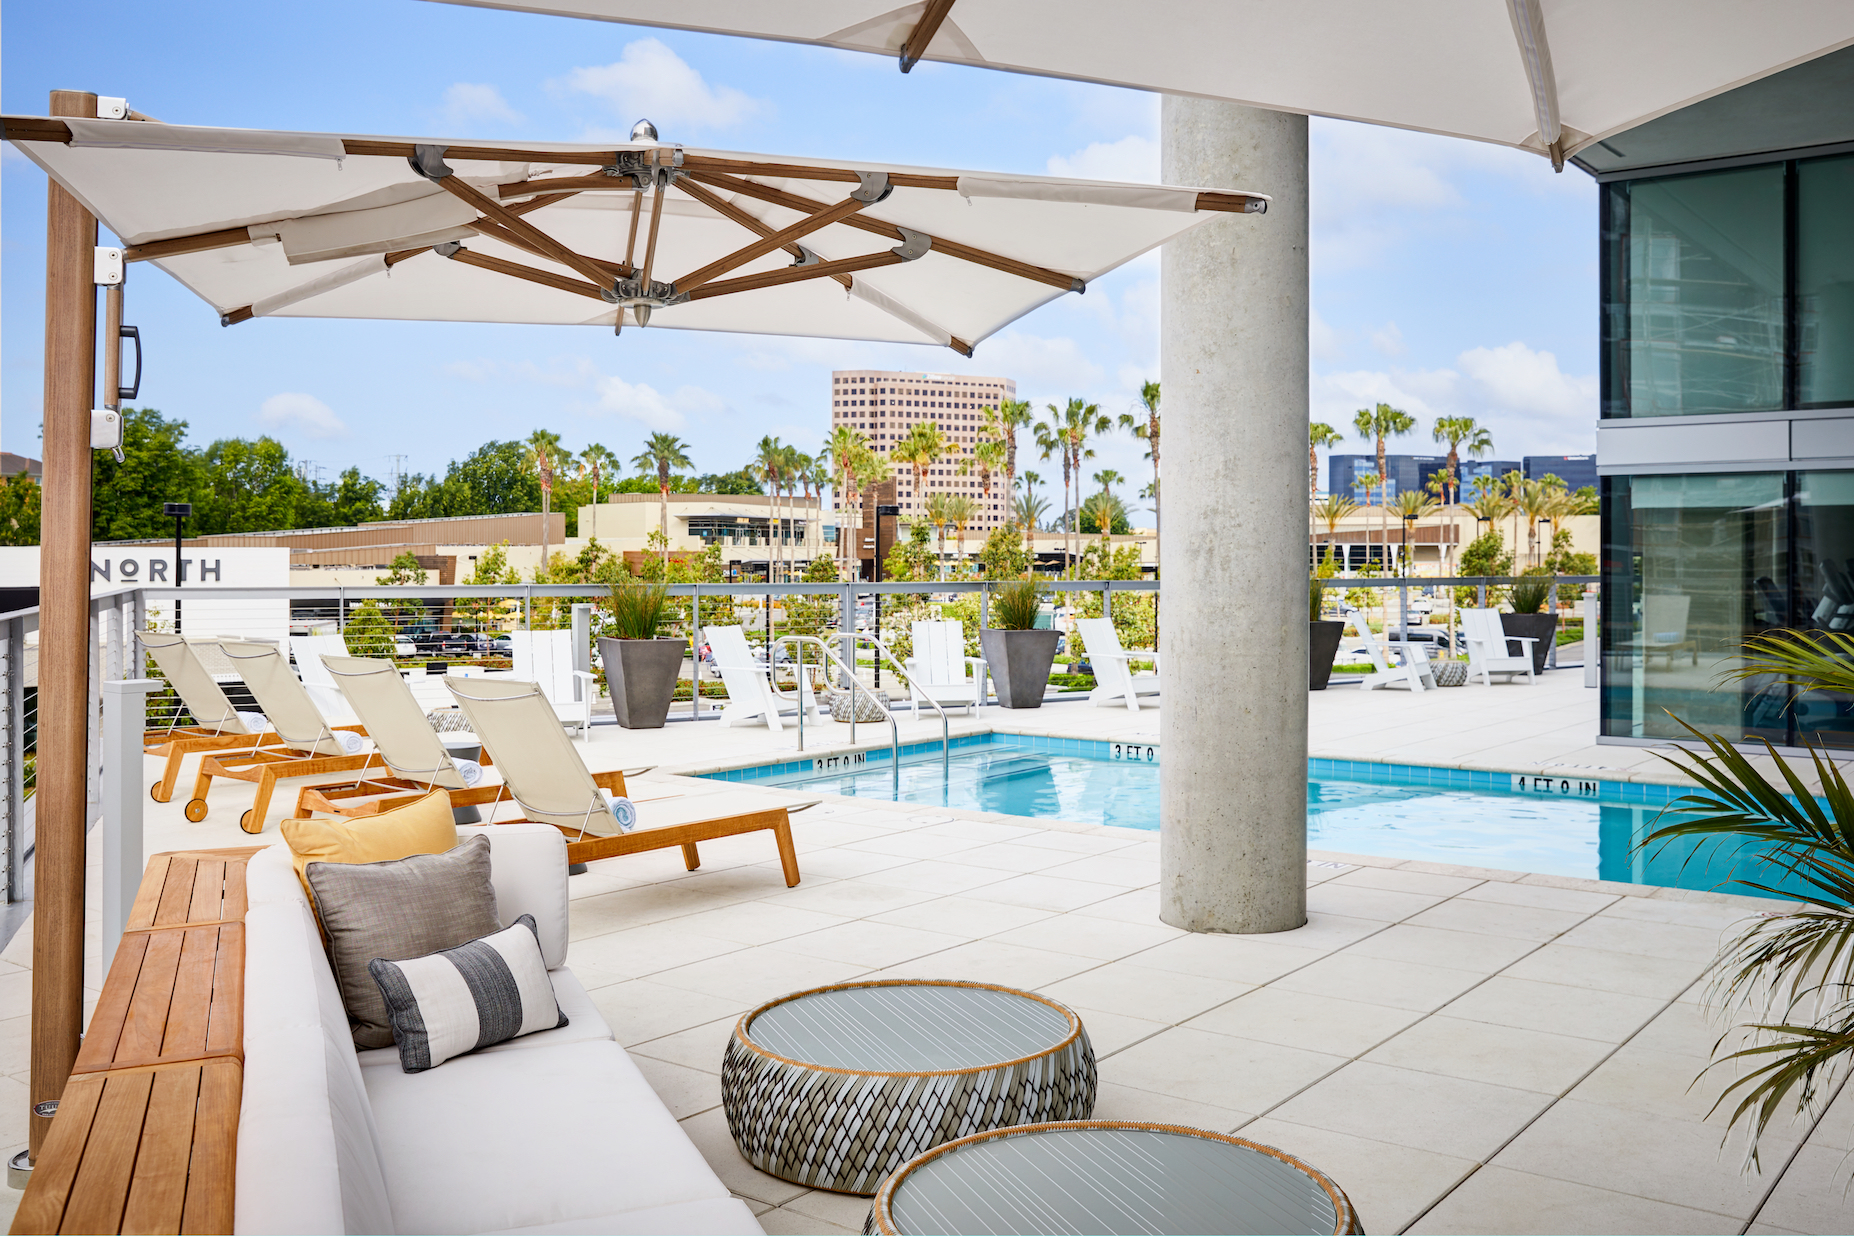 AC Hotel Irvine Grand Debuts as First of Its Kind in Southern